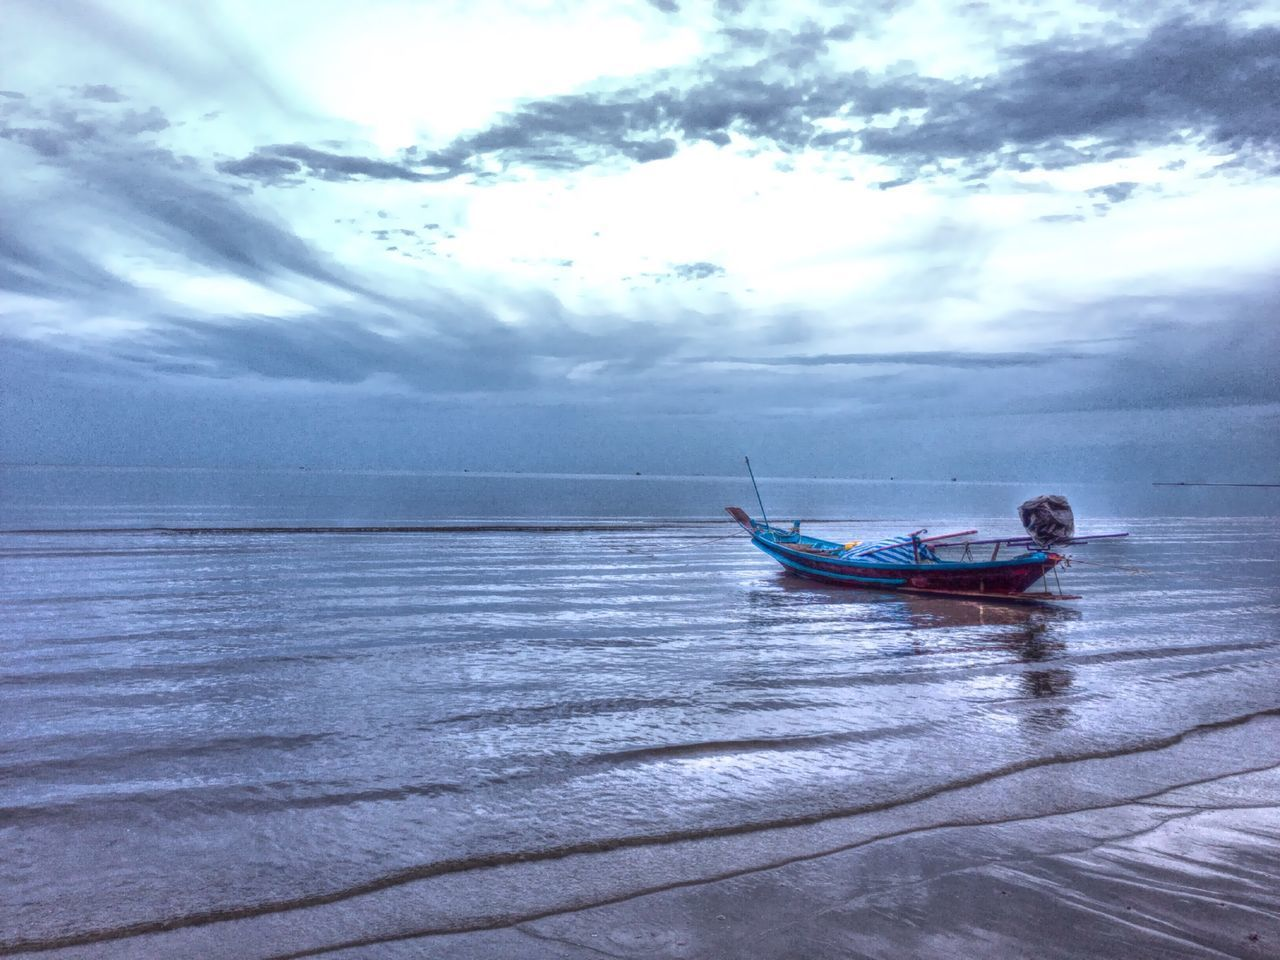 water, sea, cloud - sky, nautical vessel, transportation, nature, sky, mode of transport, waterfront, scenics, beauty in nature, horizon over water, day, outdoors, real people